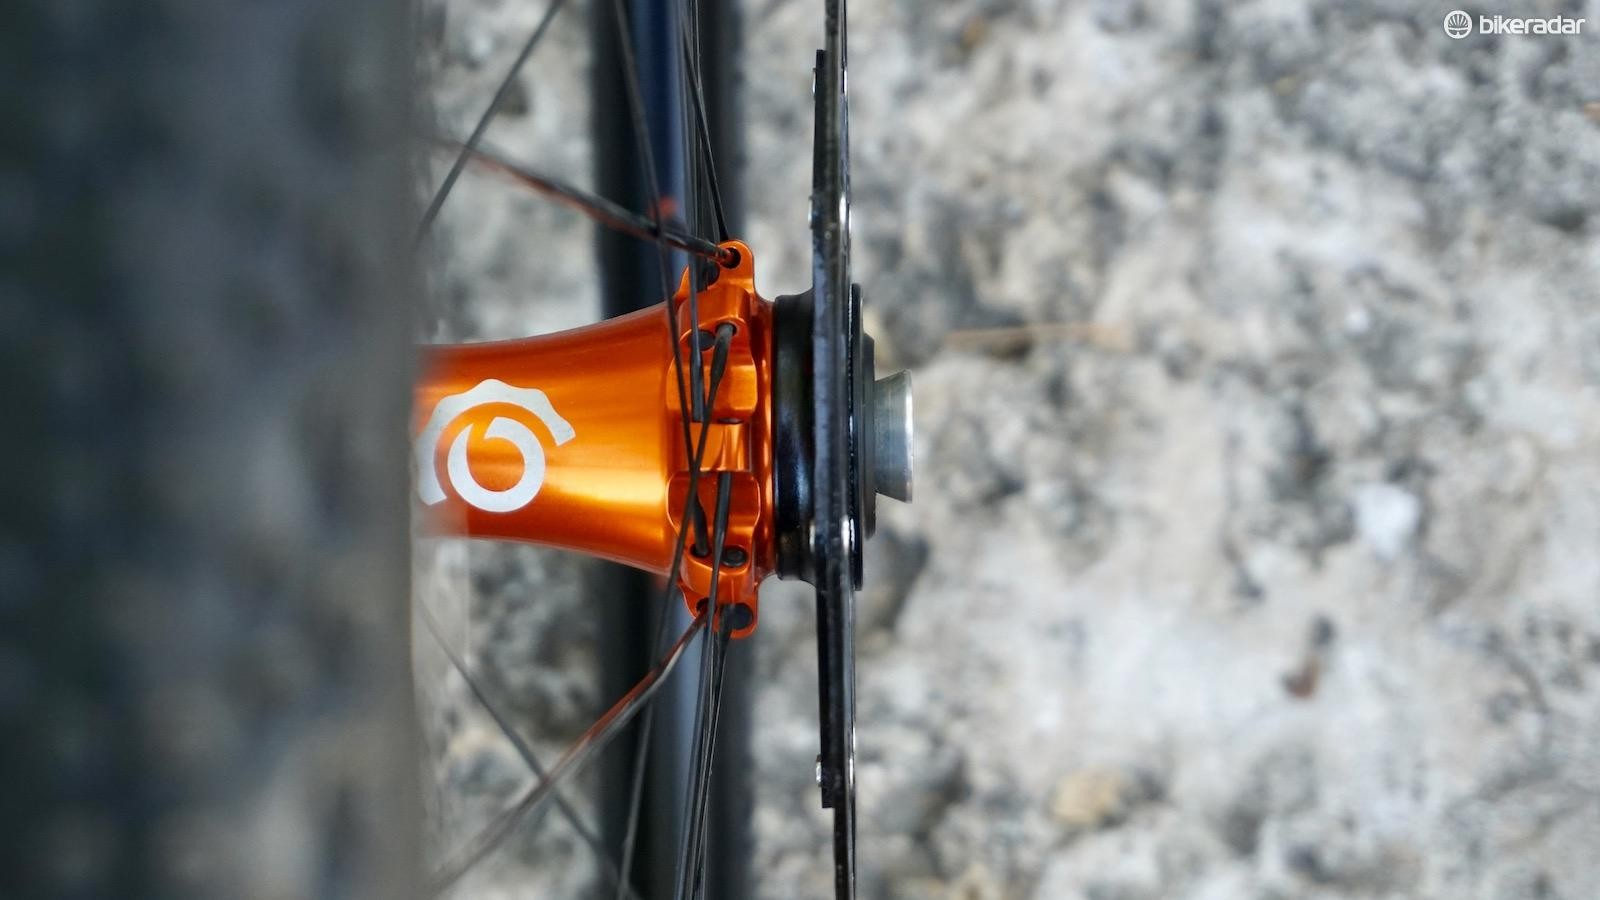 Centerlock seen here, but 6-bolt is also an option on the ULCX (and other I9 wheels)